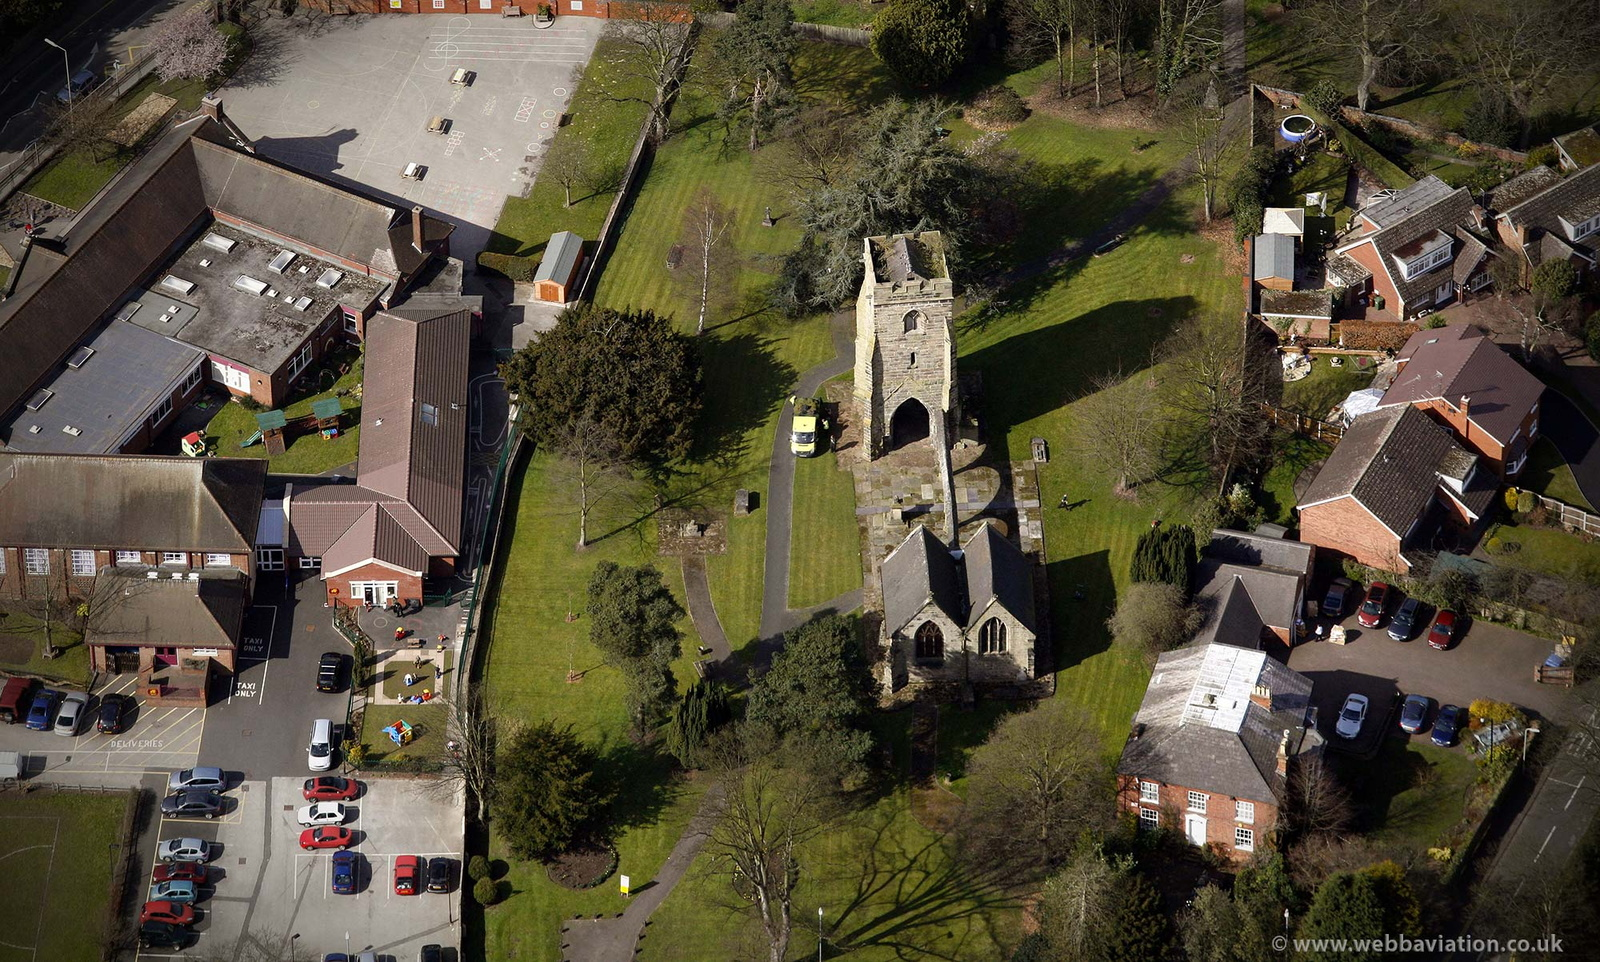 Old Church of St Augustine, Rugeley, Staffordshire from the air